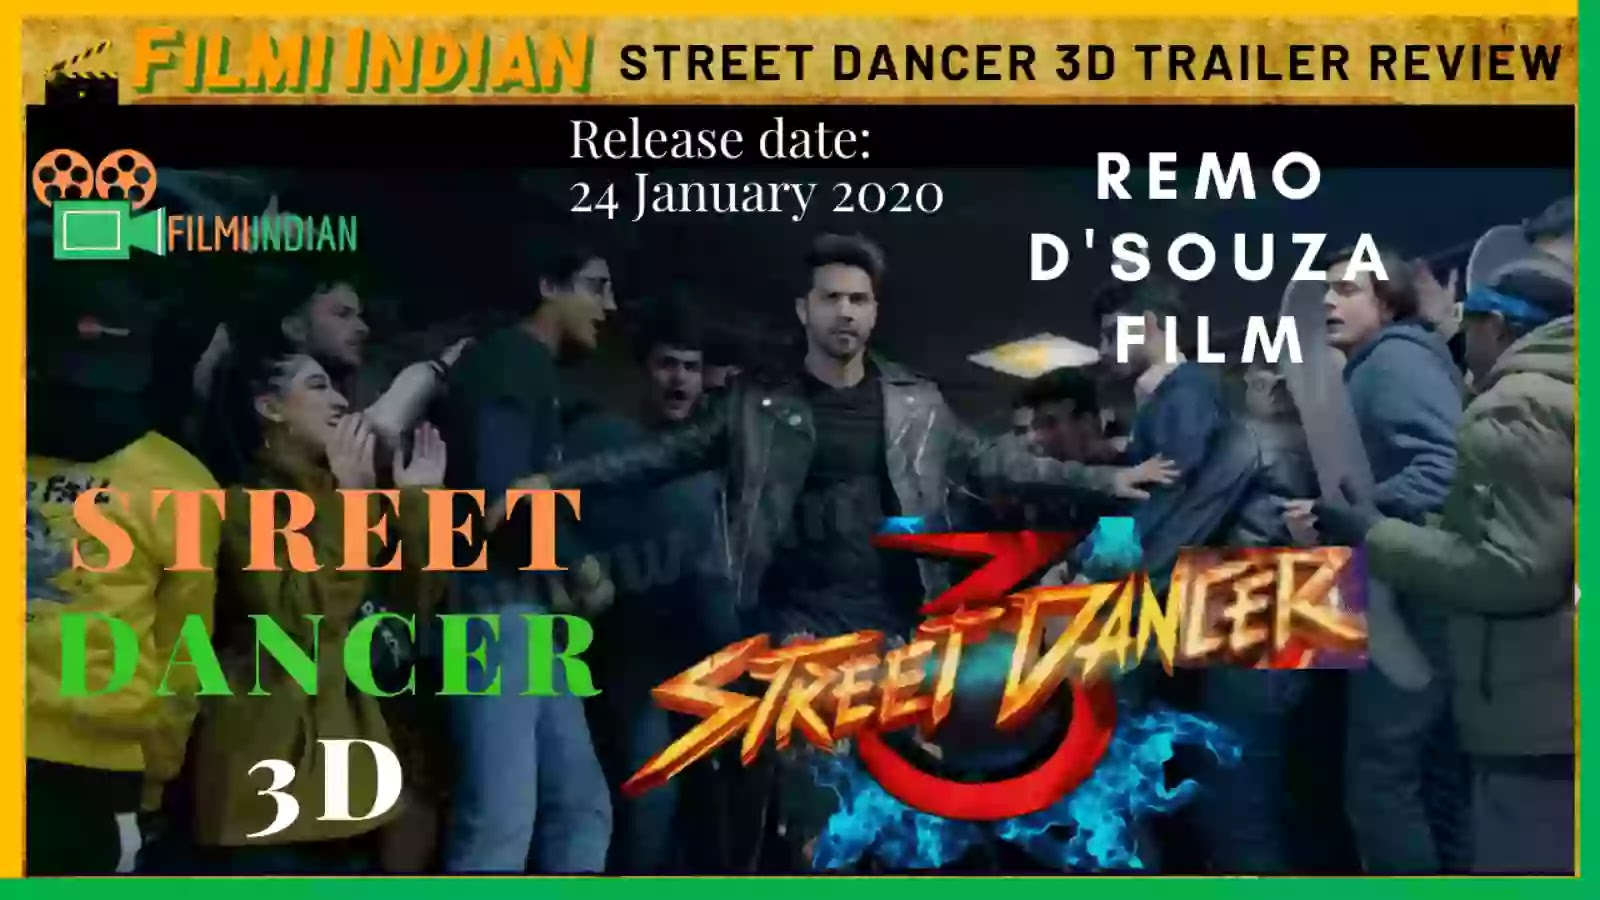 Street Dancer : 3D (2020) Movie Trailer : Best and Honest Review